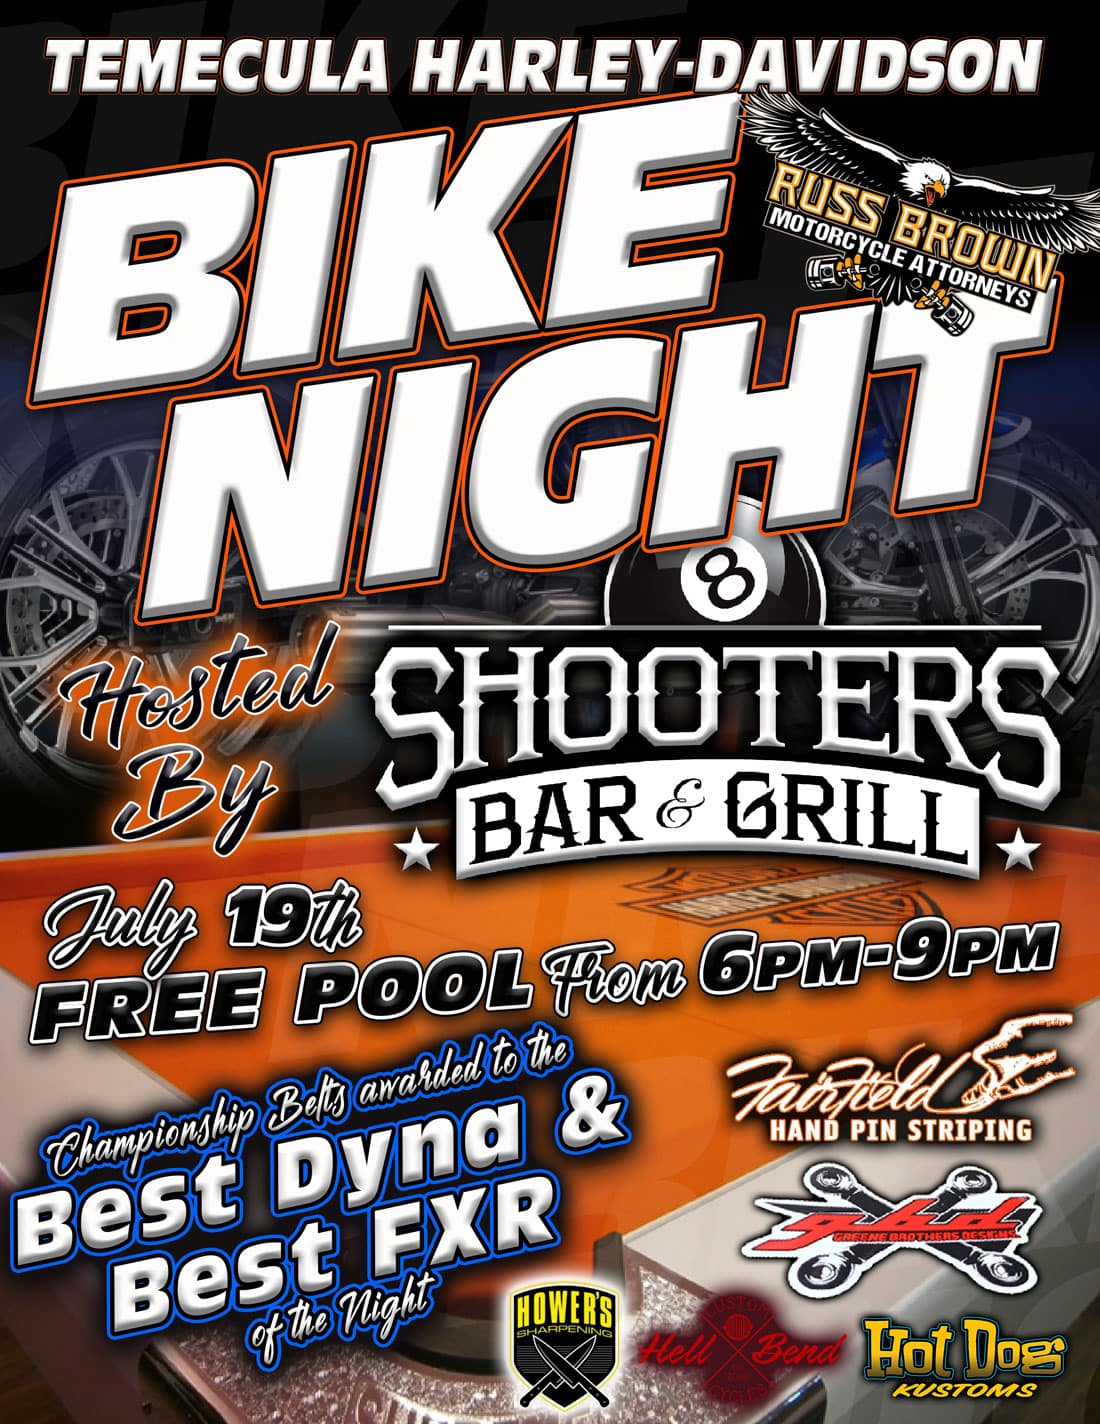 Bike Night Temecula Harley-Davidson